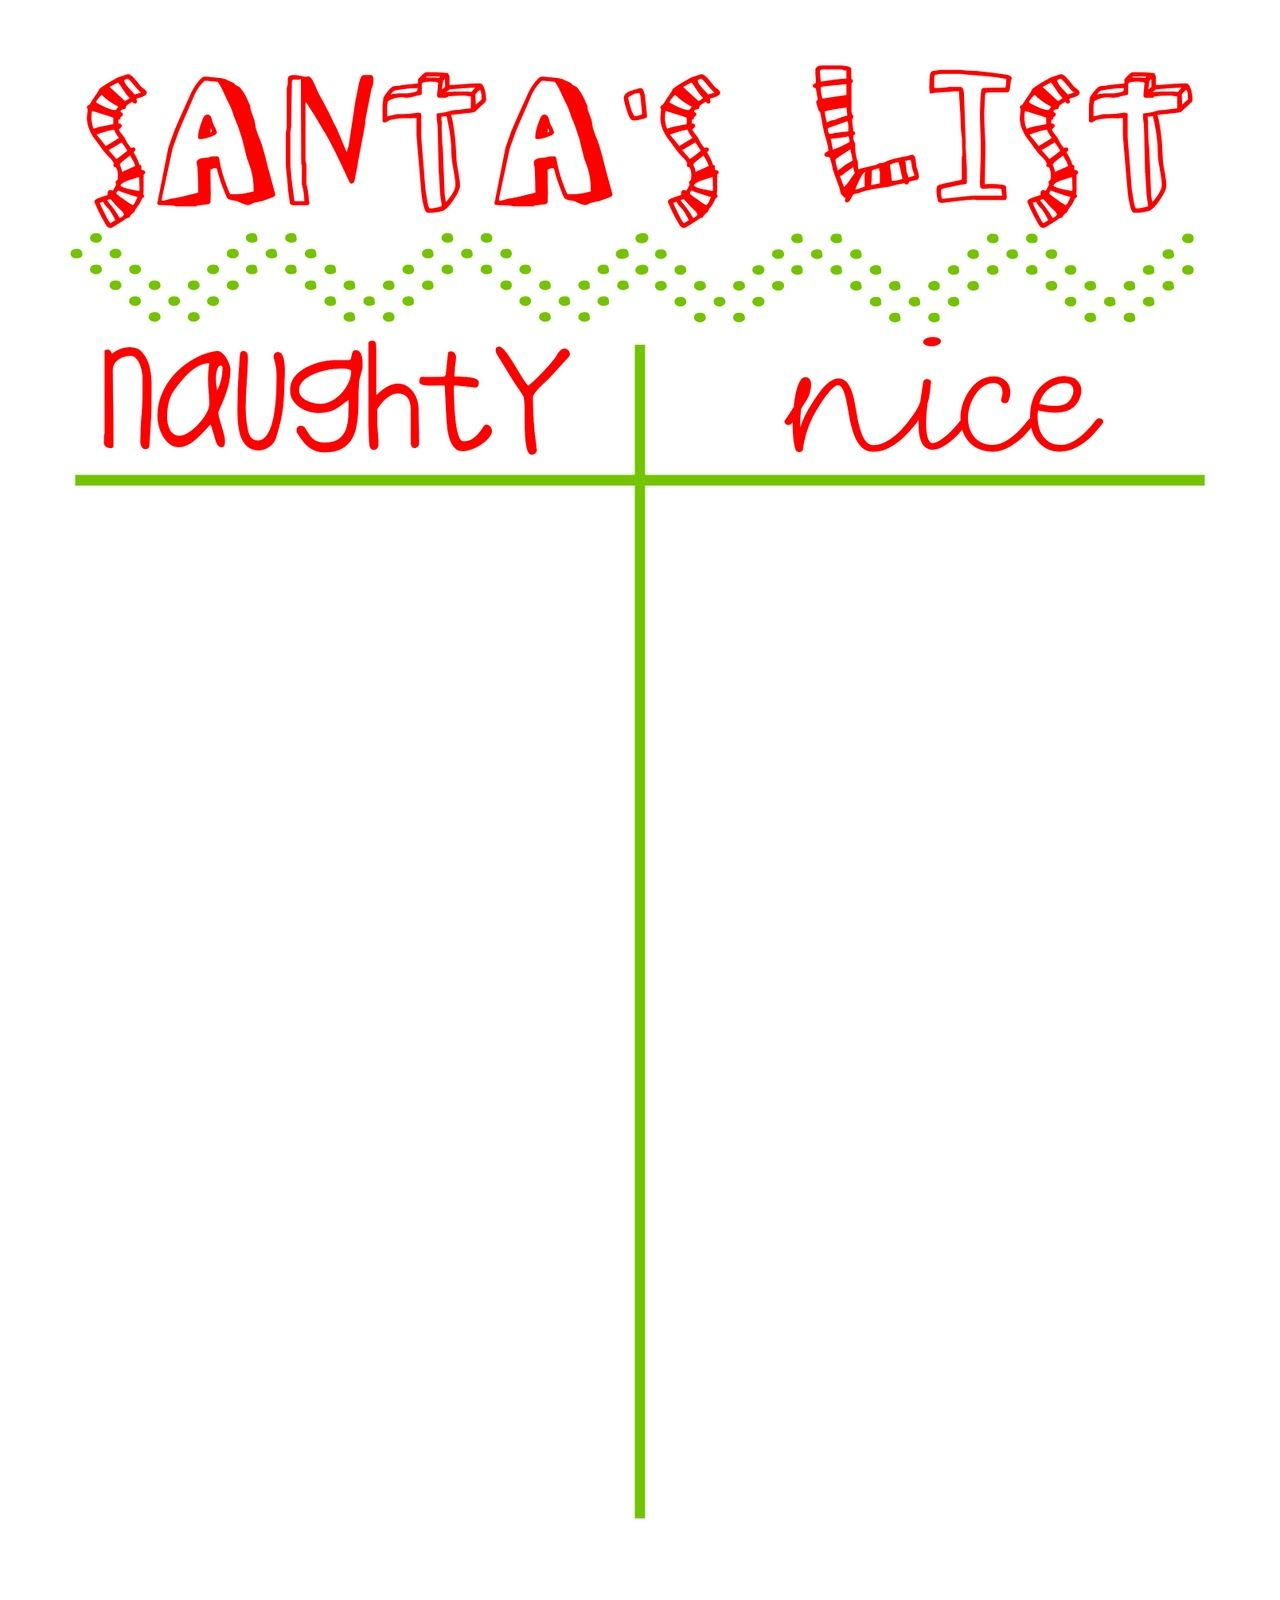 12 Days Of Christmas Naughty Or Nice List Printable